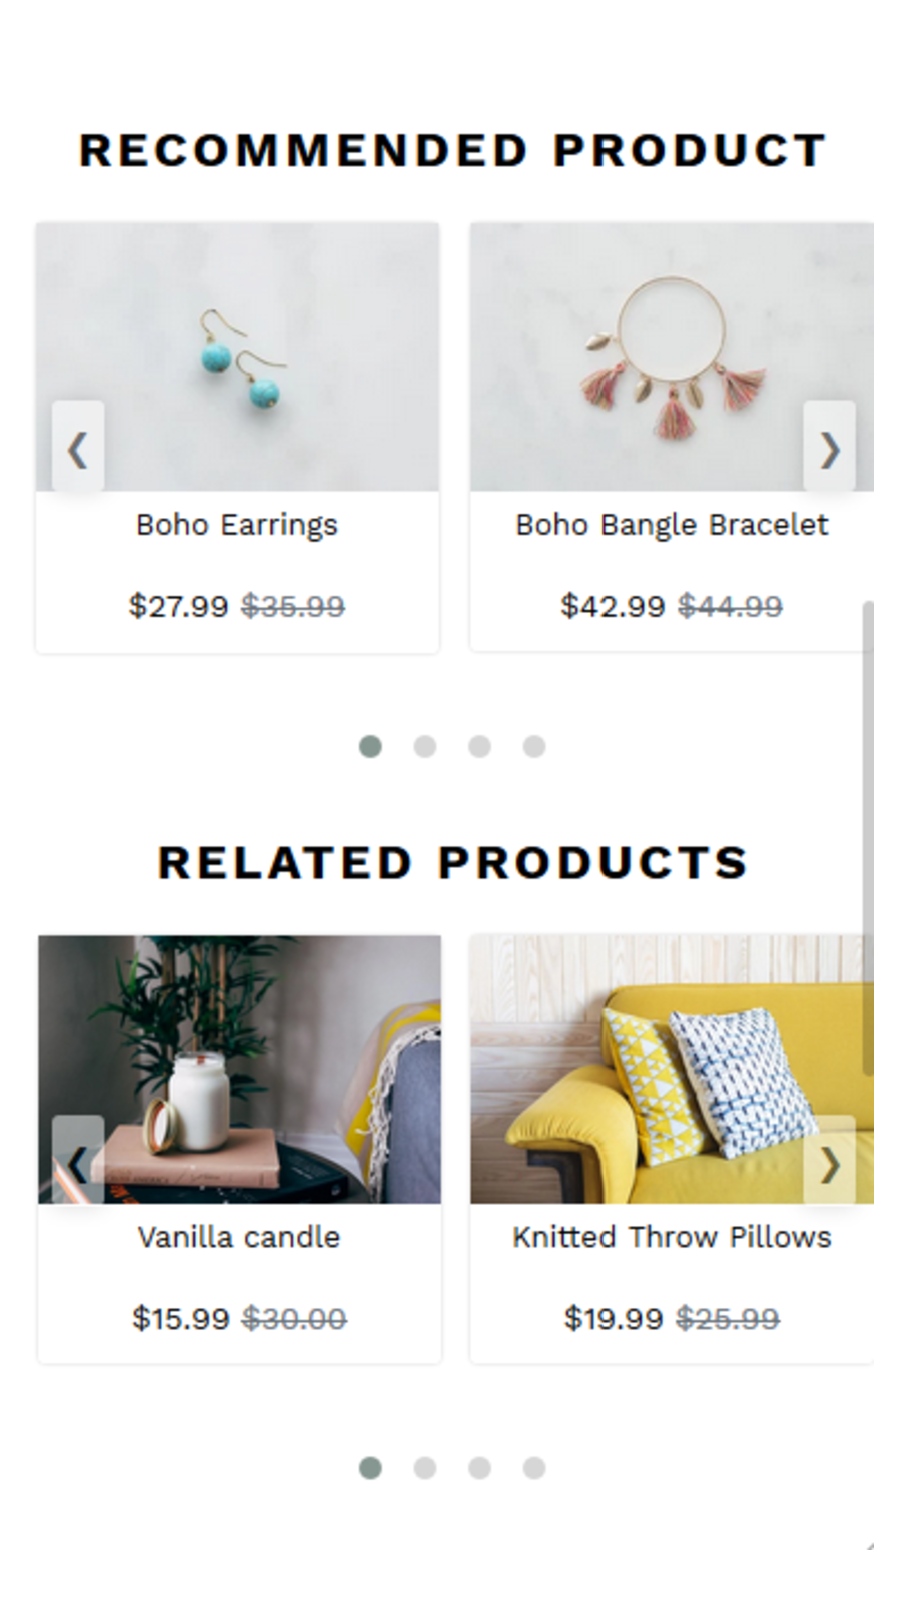 Personalized Recommendations And Related Products